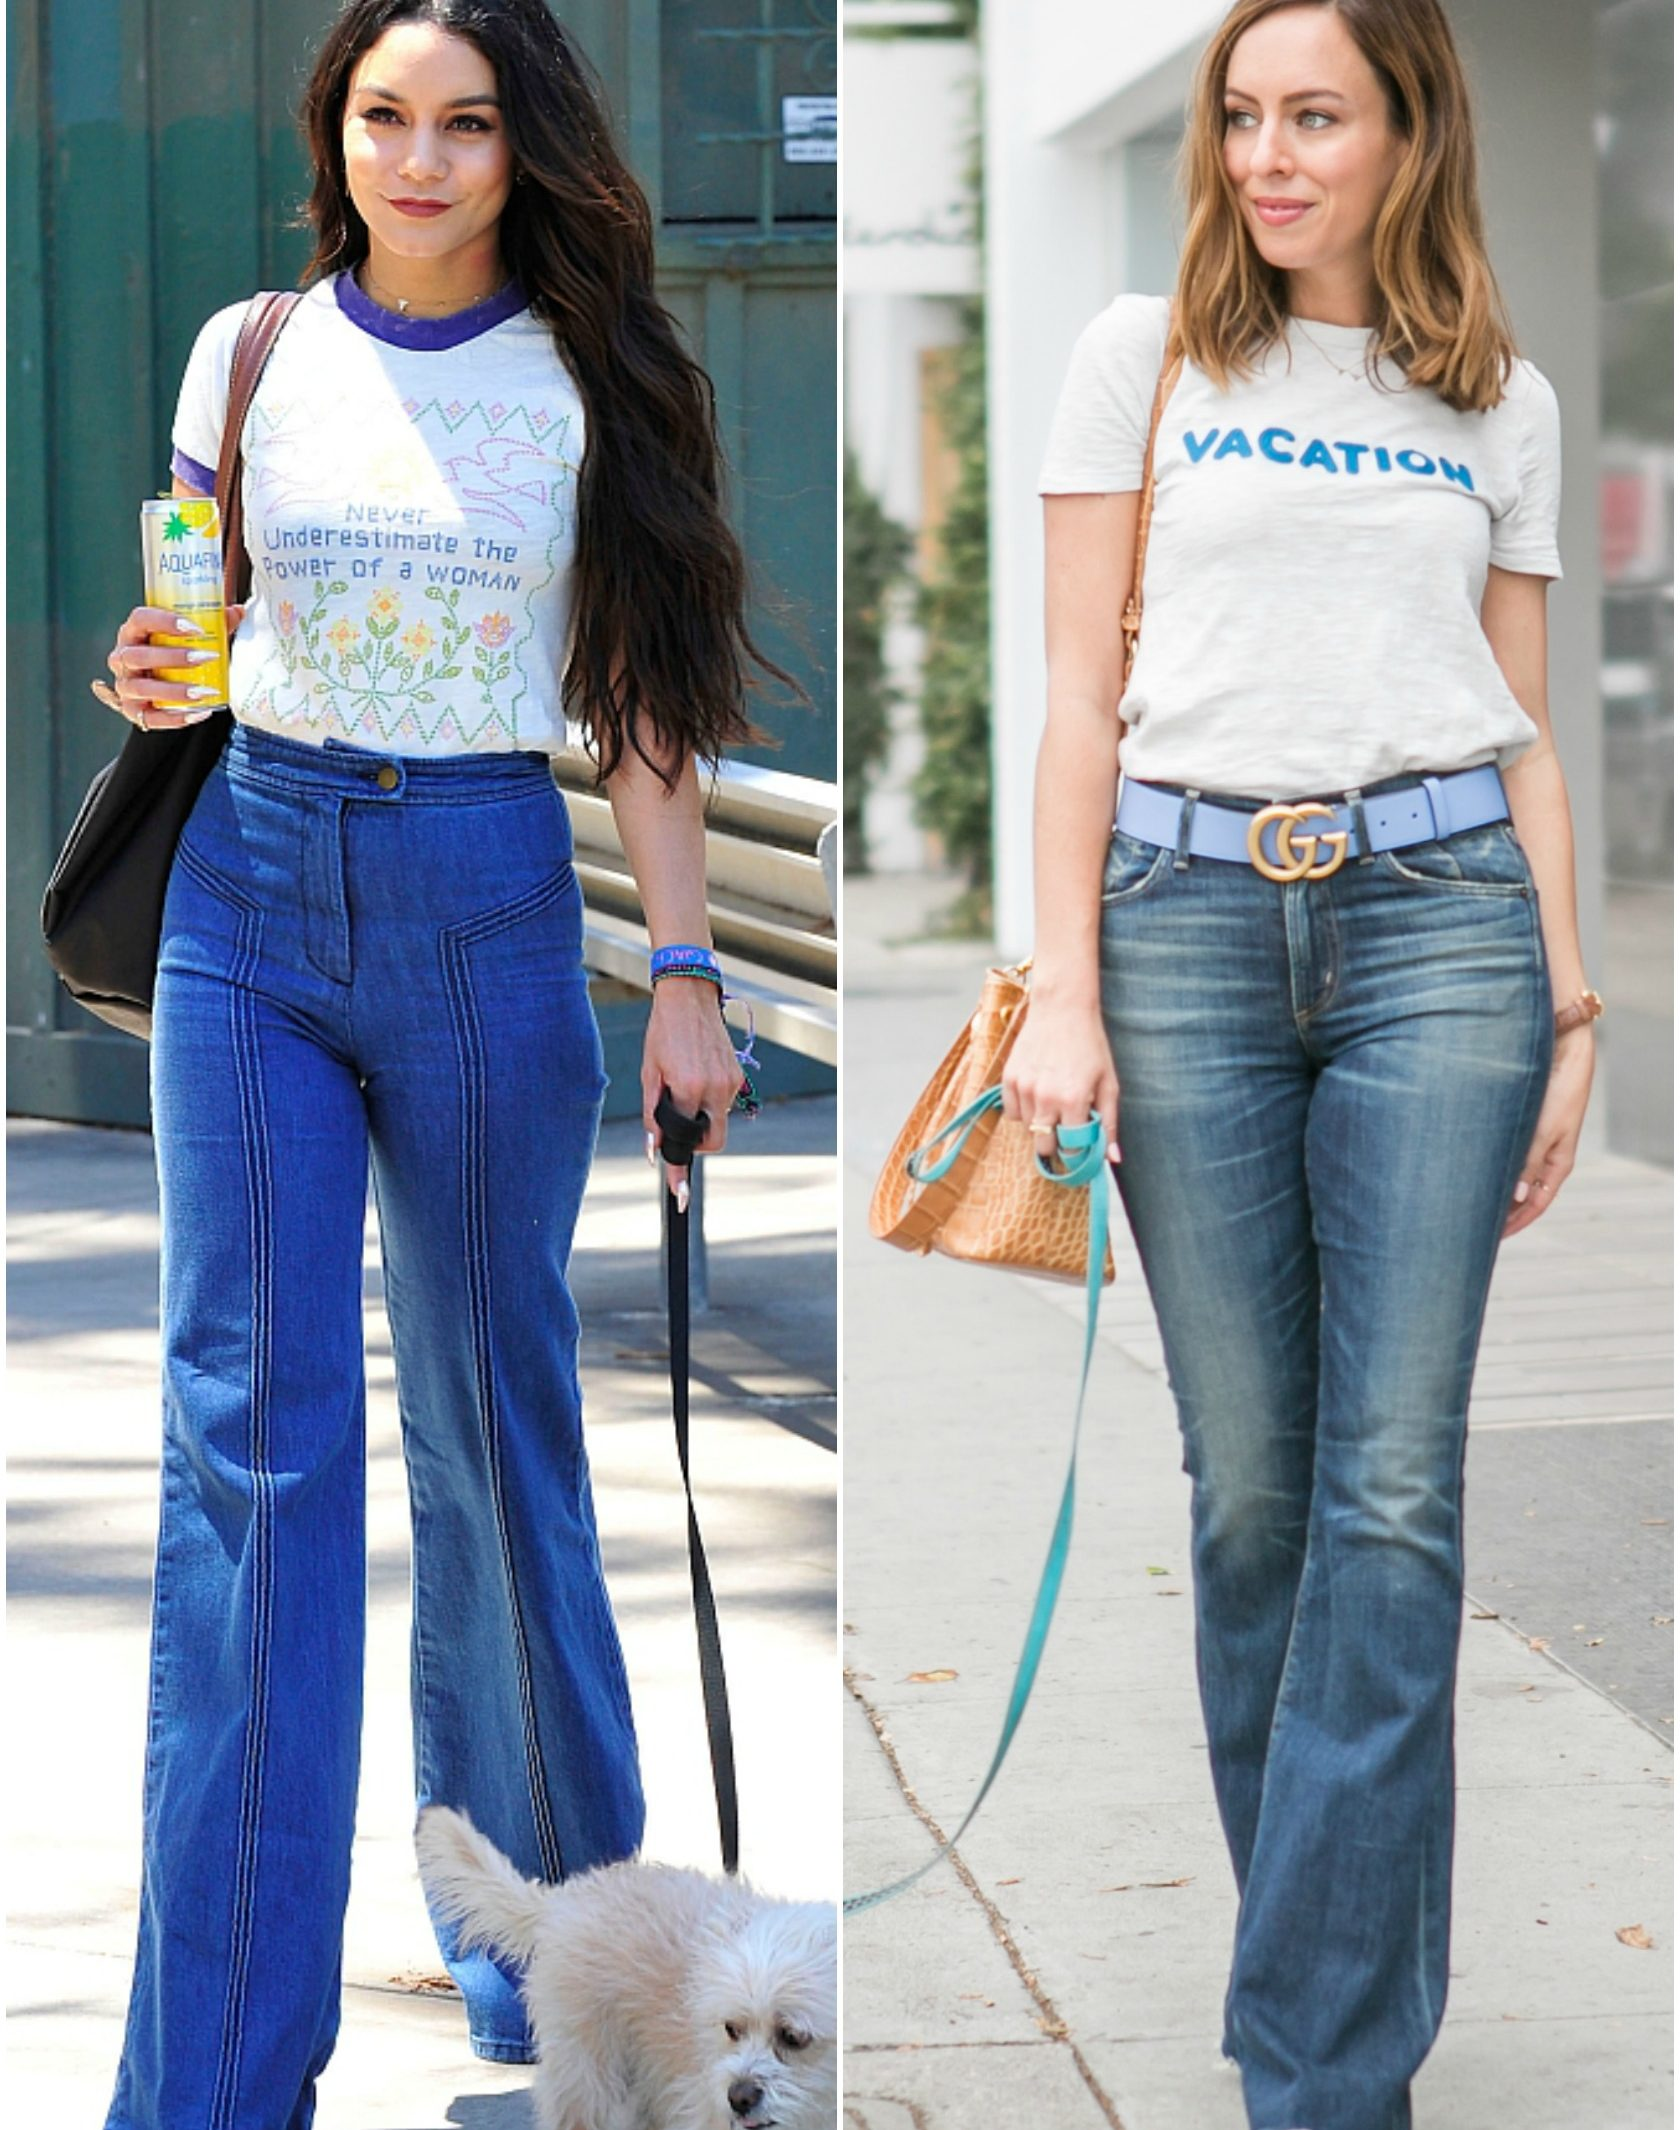 Sydne Style shows how to get Vanessa Hudgens street style in flare jeans and graphic tee